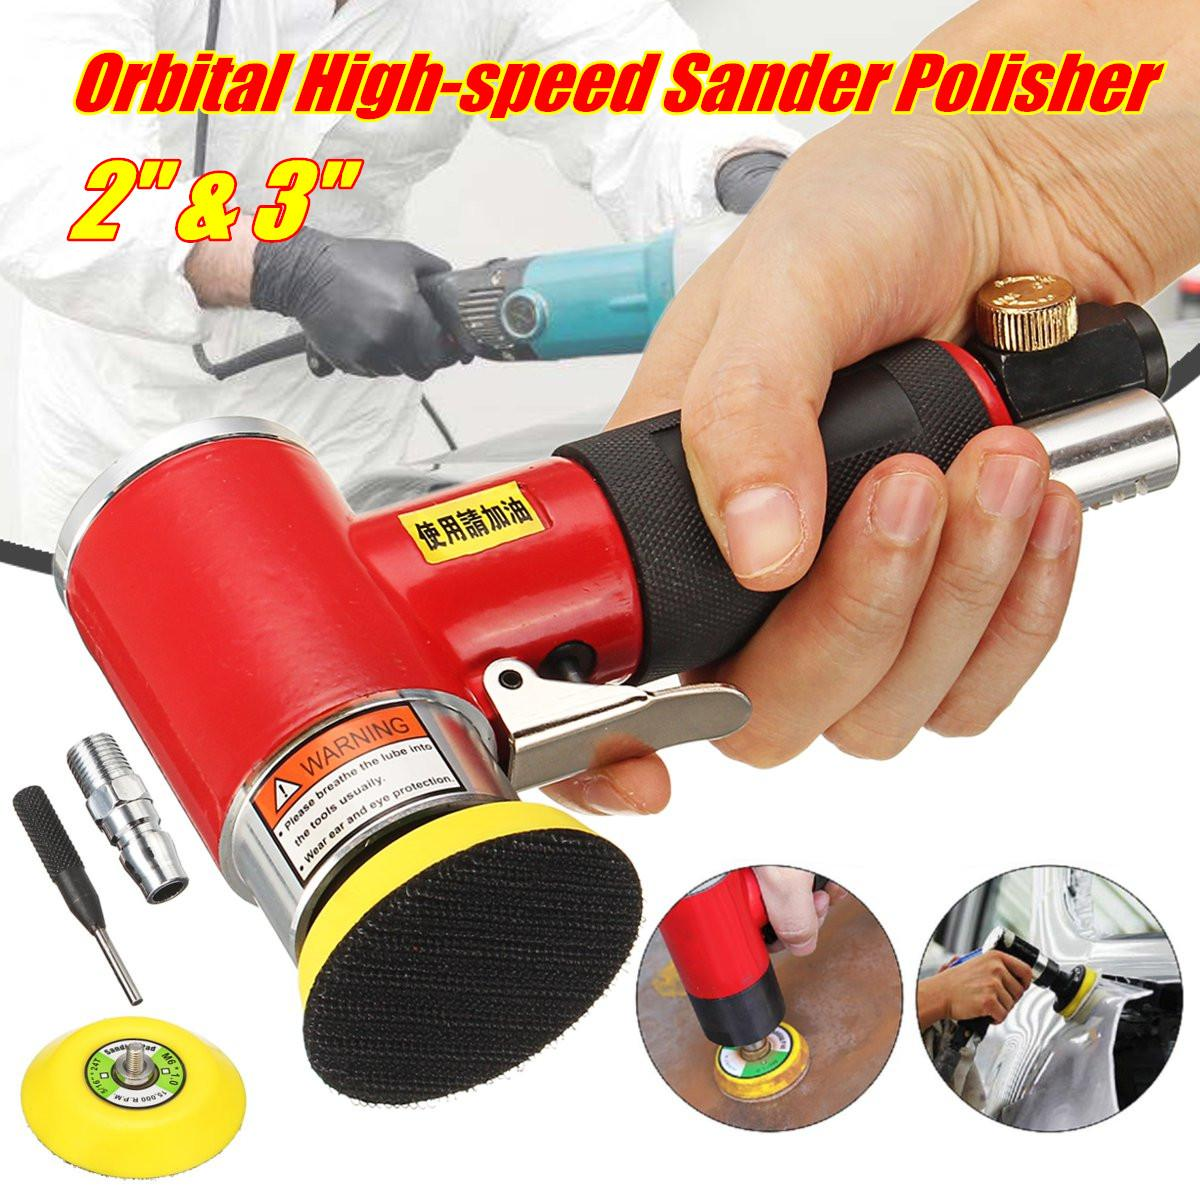 Mini Air Eccentric Pneumatic Polishing Sander Polisher Sanding Machine 1/4in M6 For Various Materials Grinding Fine PolishingMini Air Eccentric Pneumatic Polishing Sander Polisher Sanding Machine 1/4in M6 For Various Materials Grinding Fine Polishing